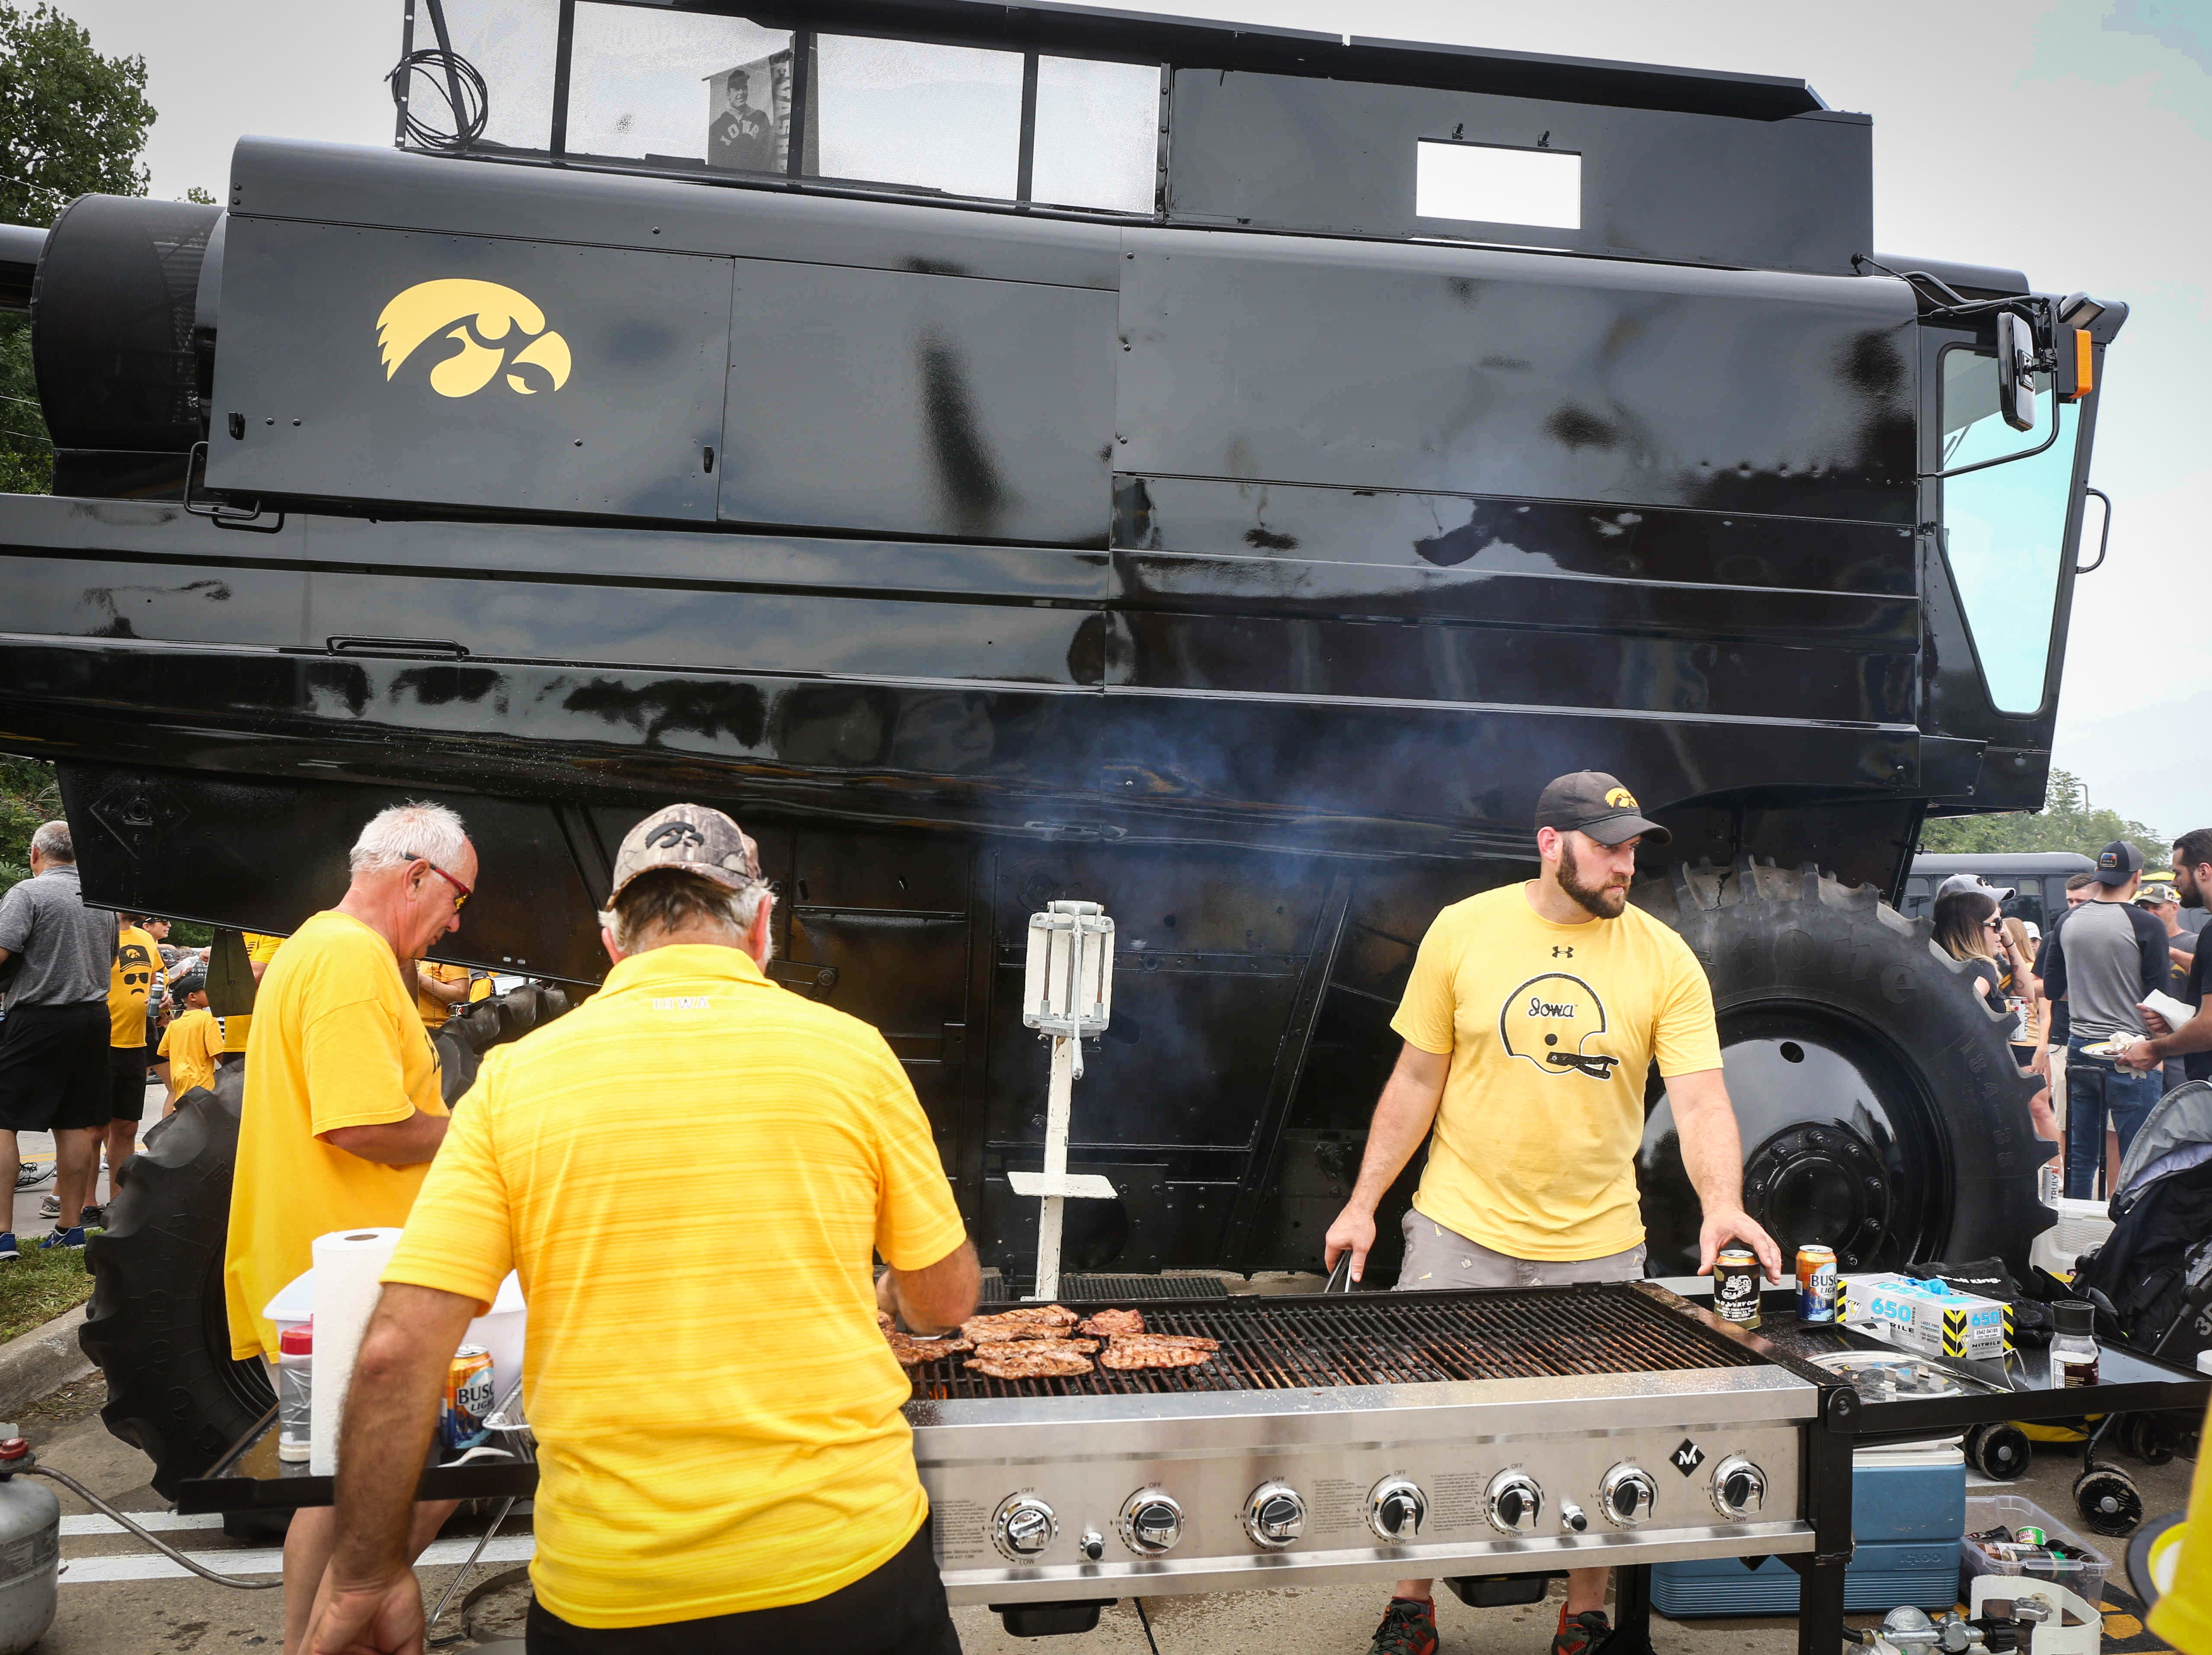 Fans gather around a combine during tailgating prior to kickoff against Northern Illinois on Saturday, Sept. 1, 2018, in Iowa City.